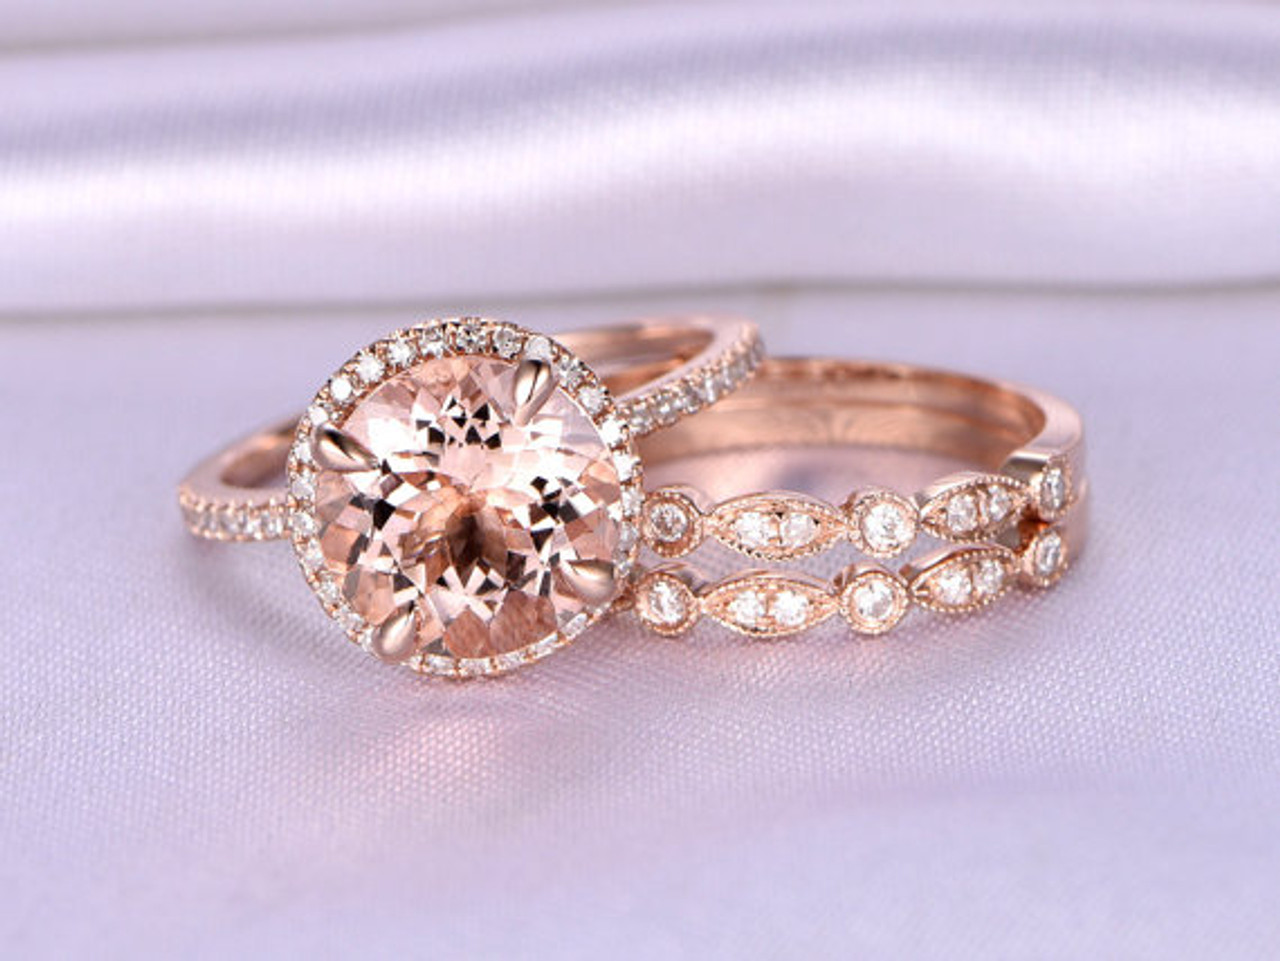 3pcs 9mm Big Morganite Wedding Ring SetEngagement ring14k Rose